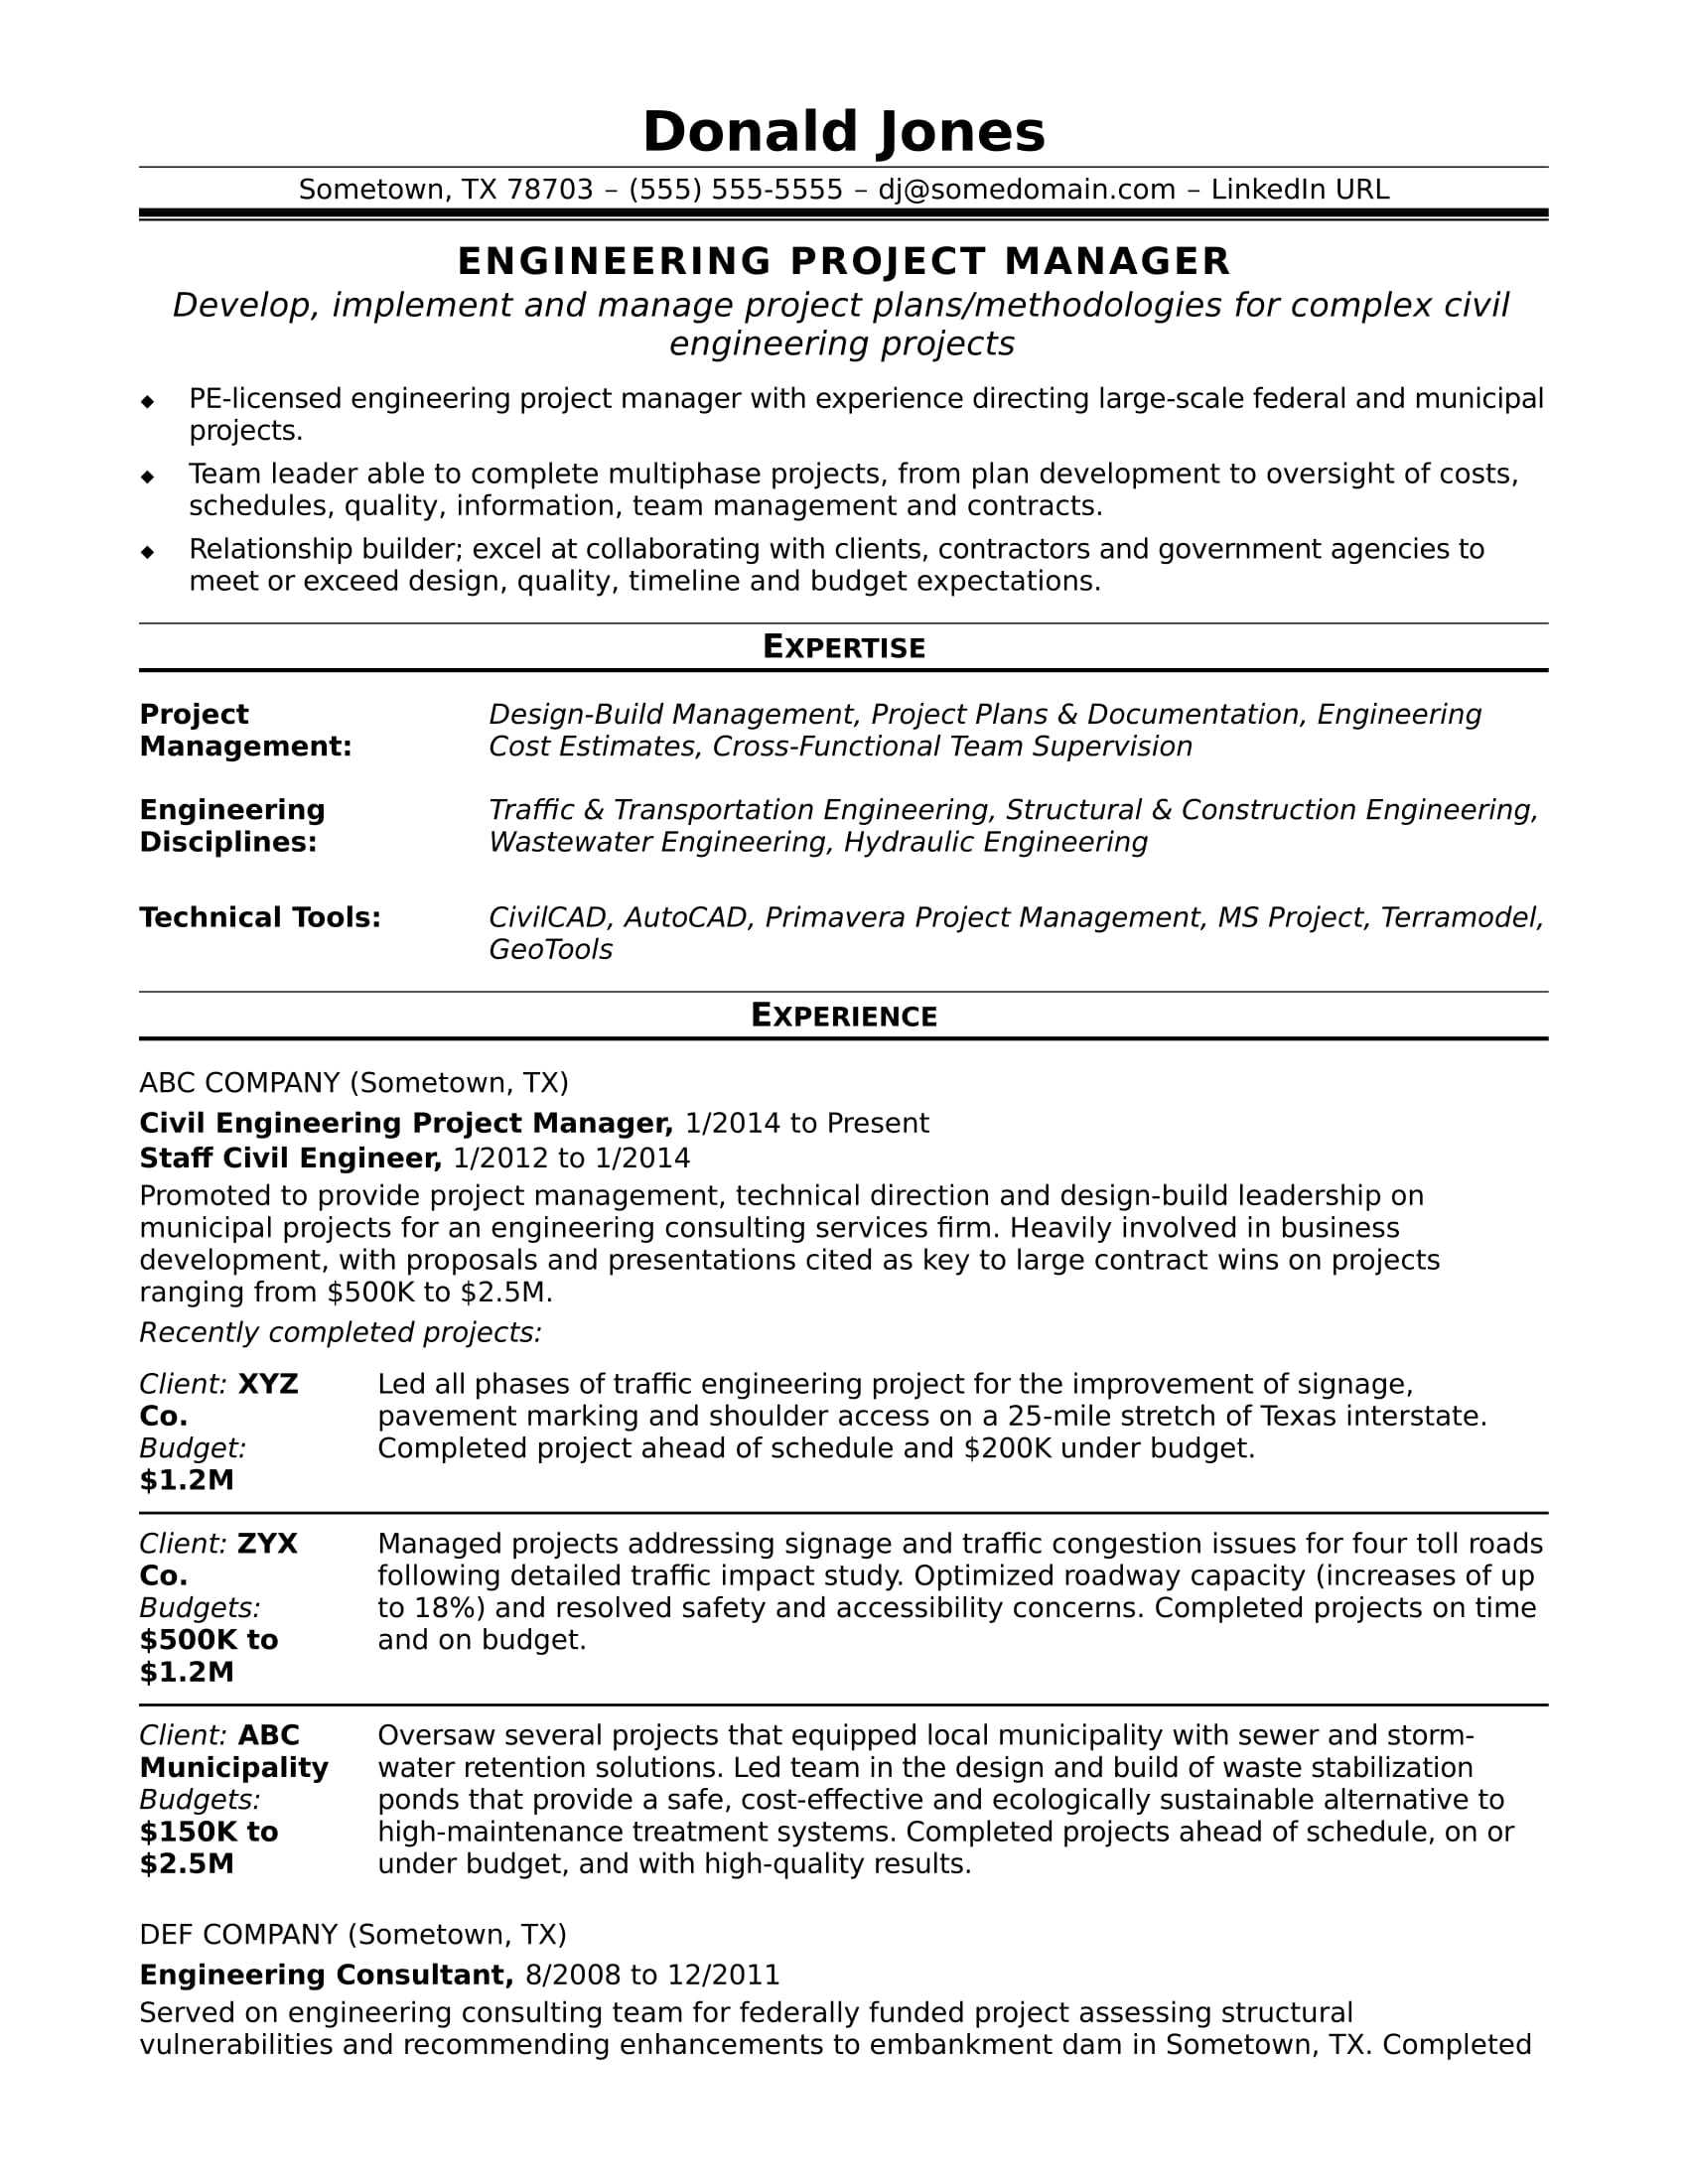 sample resume for a midlevel engineering project manager - Resume Template For Project Manager